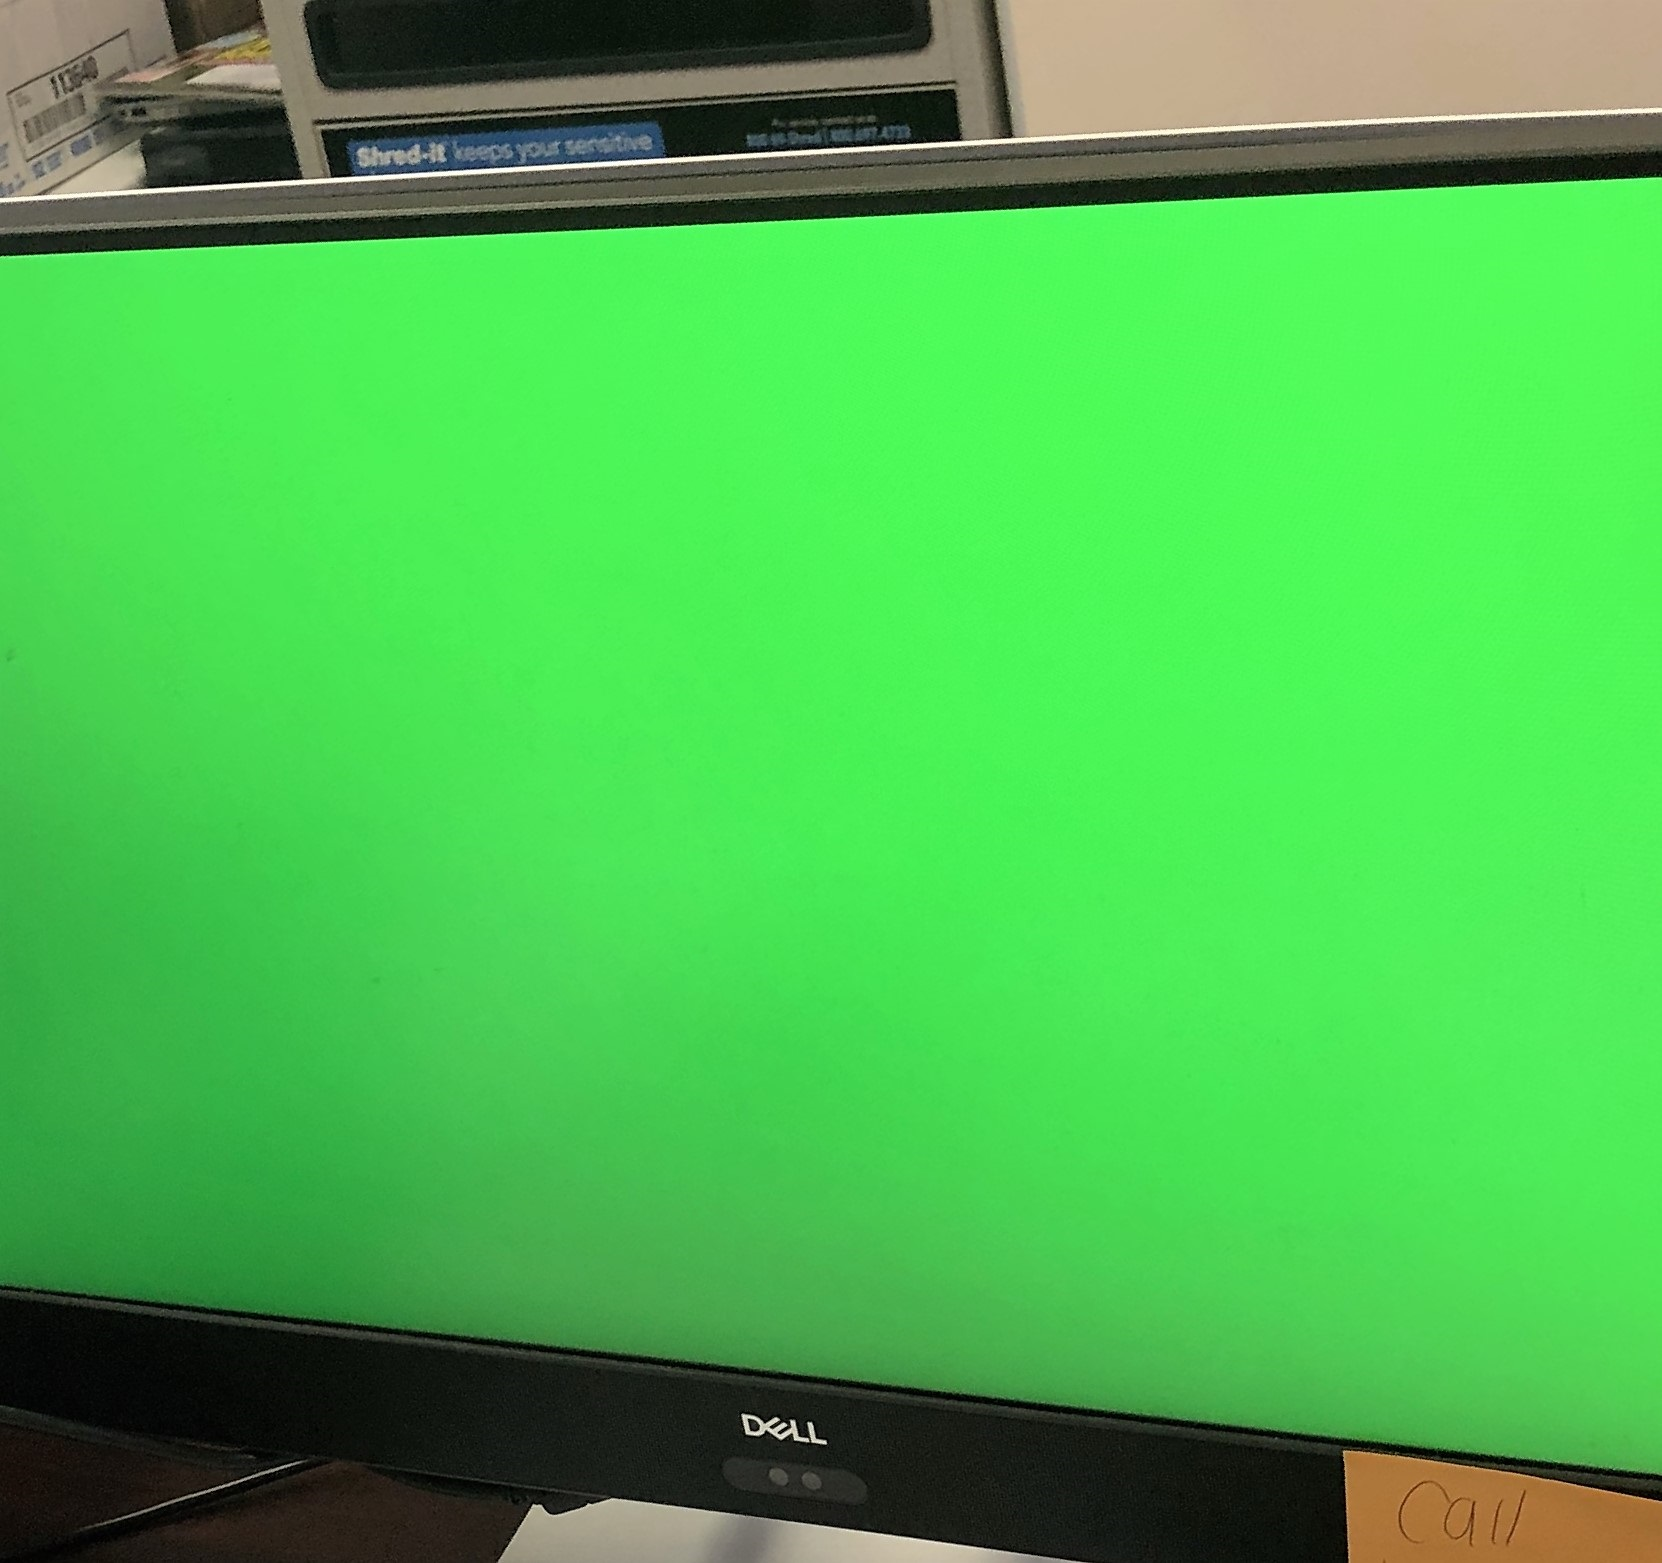 Displays / Monitors Help